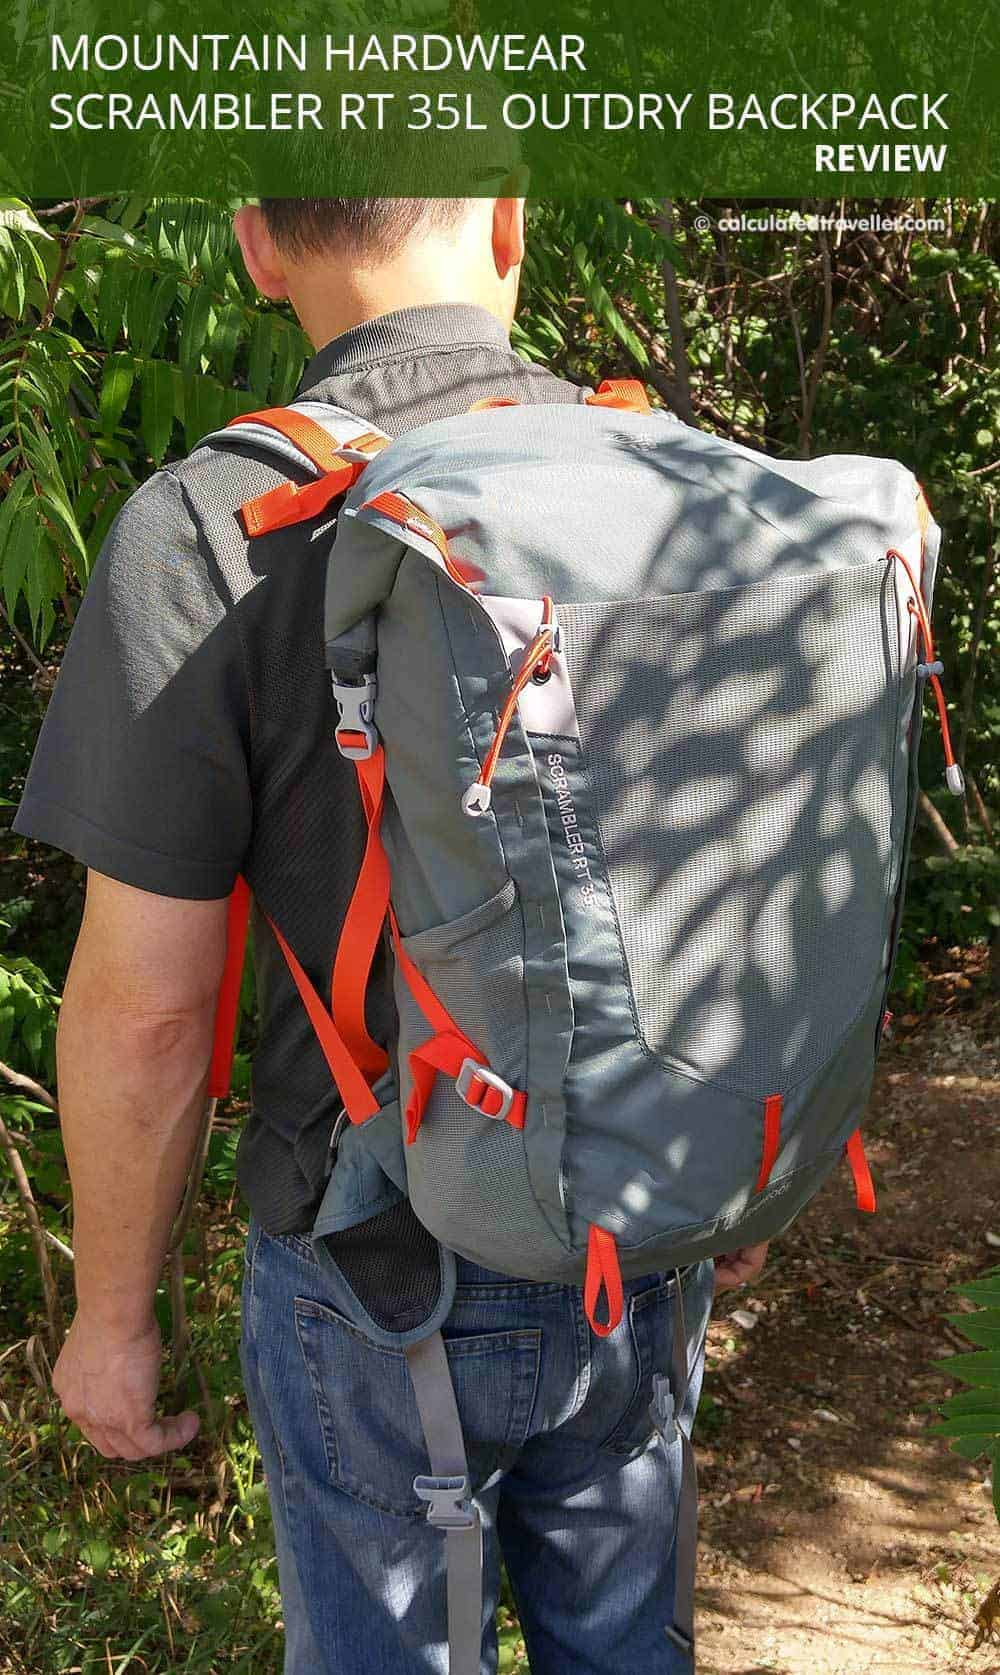 Mountain Hardwear Scrambler RT 35L Outdry Backpack. A Review by Calculated Traveller Magazine